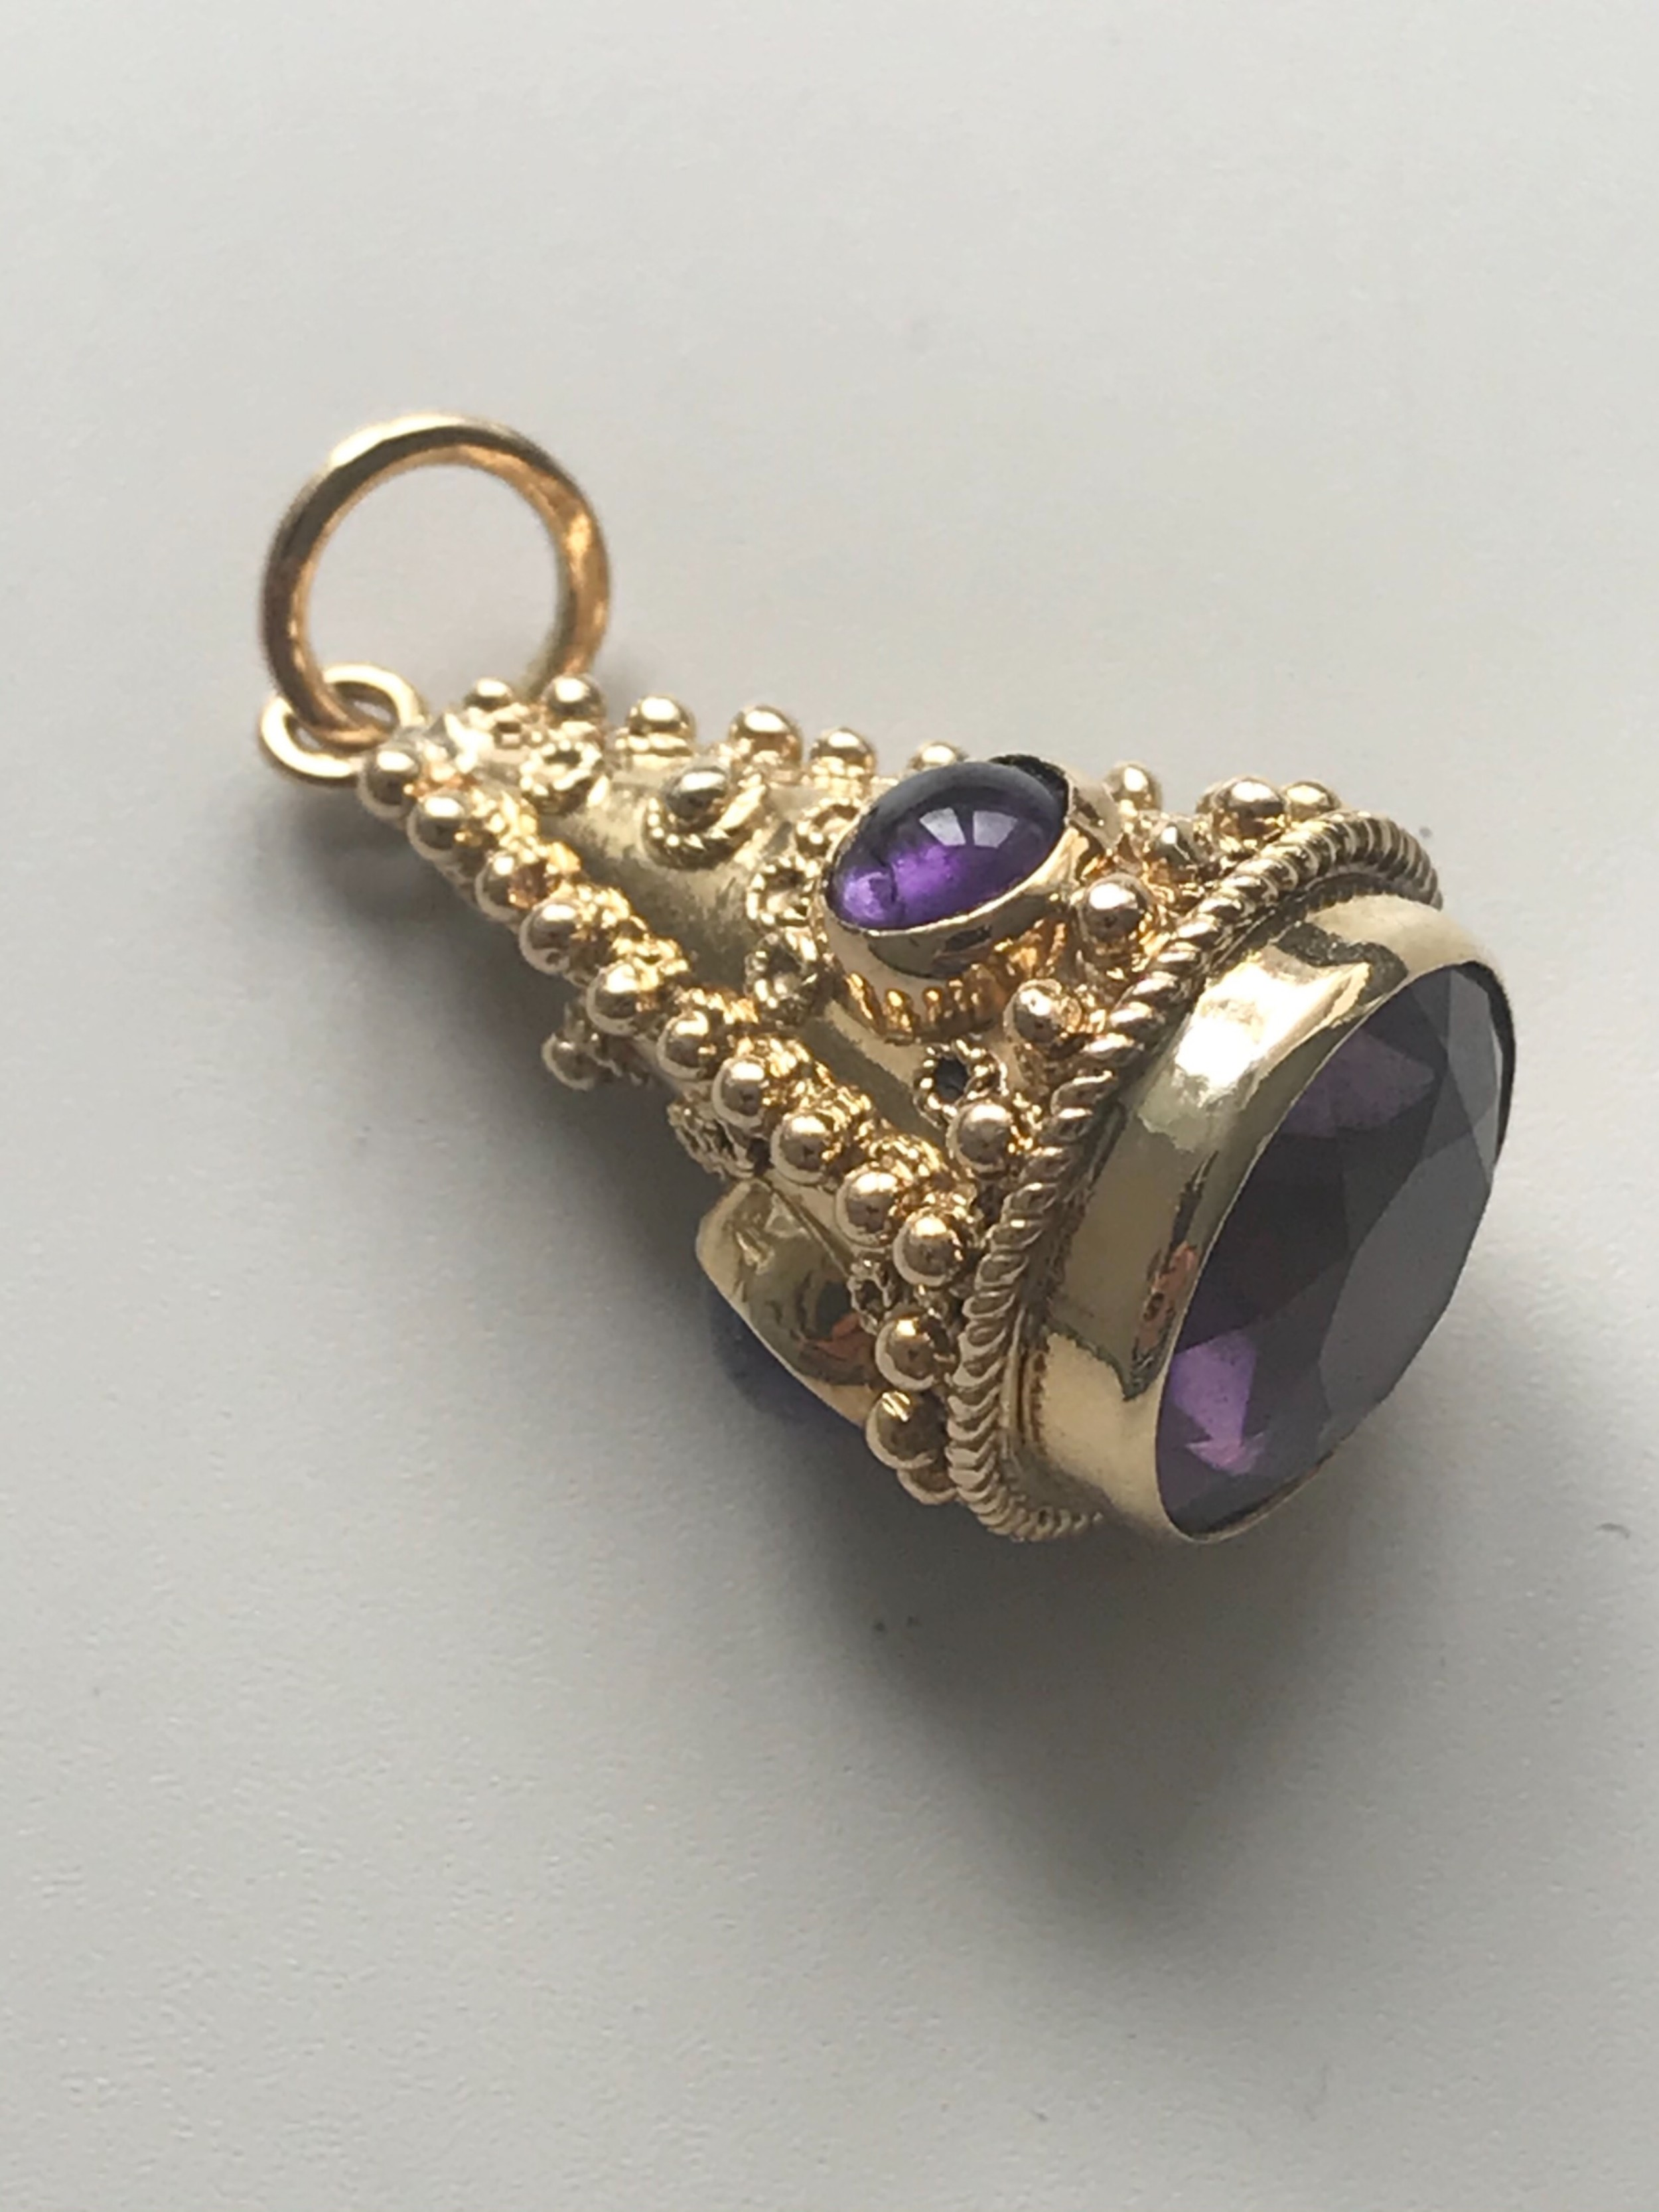 a late victorian beautiful 18 ct yellow gold amethyst pendant